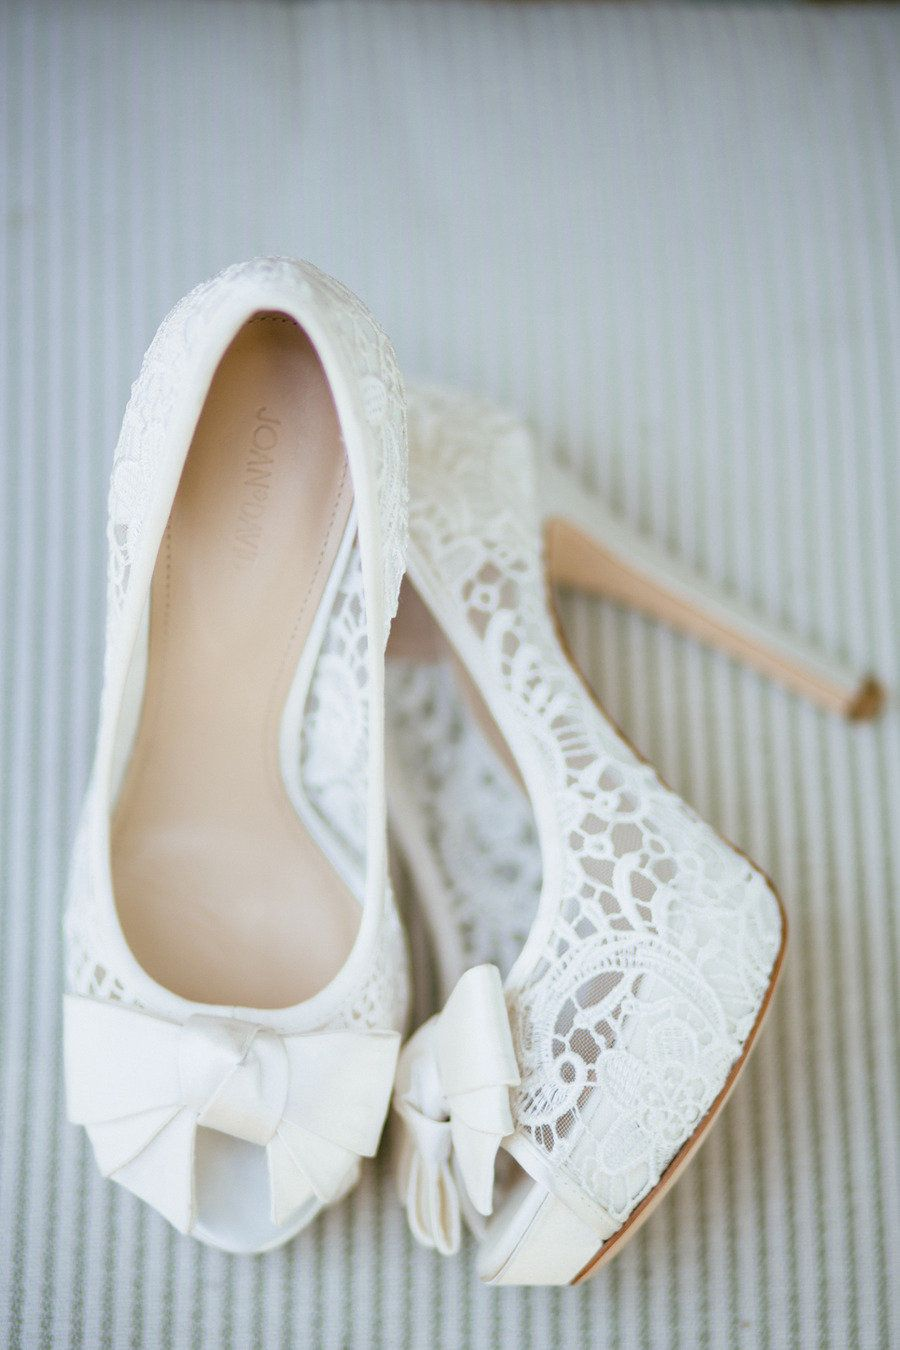 Laguna Beach Wedding from Sara and Rocky Photography + LaFleur ...